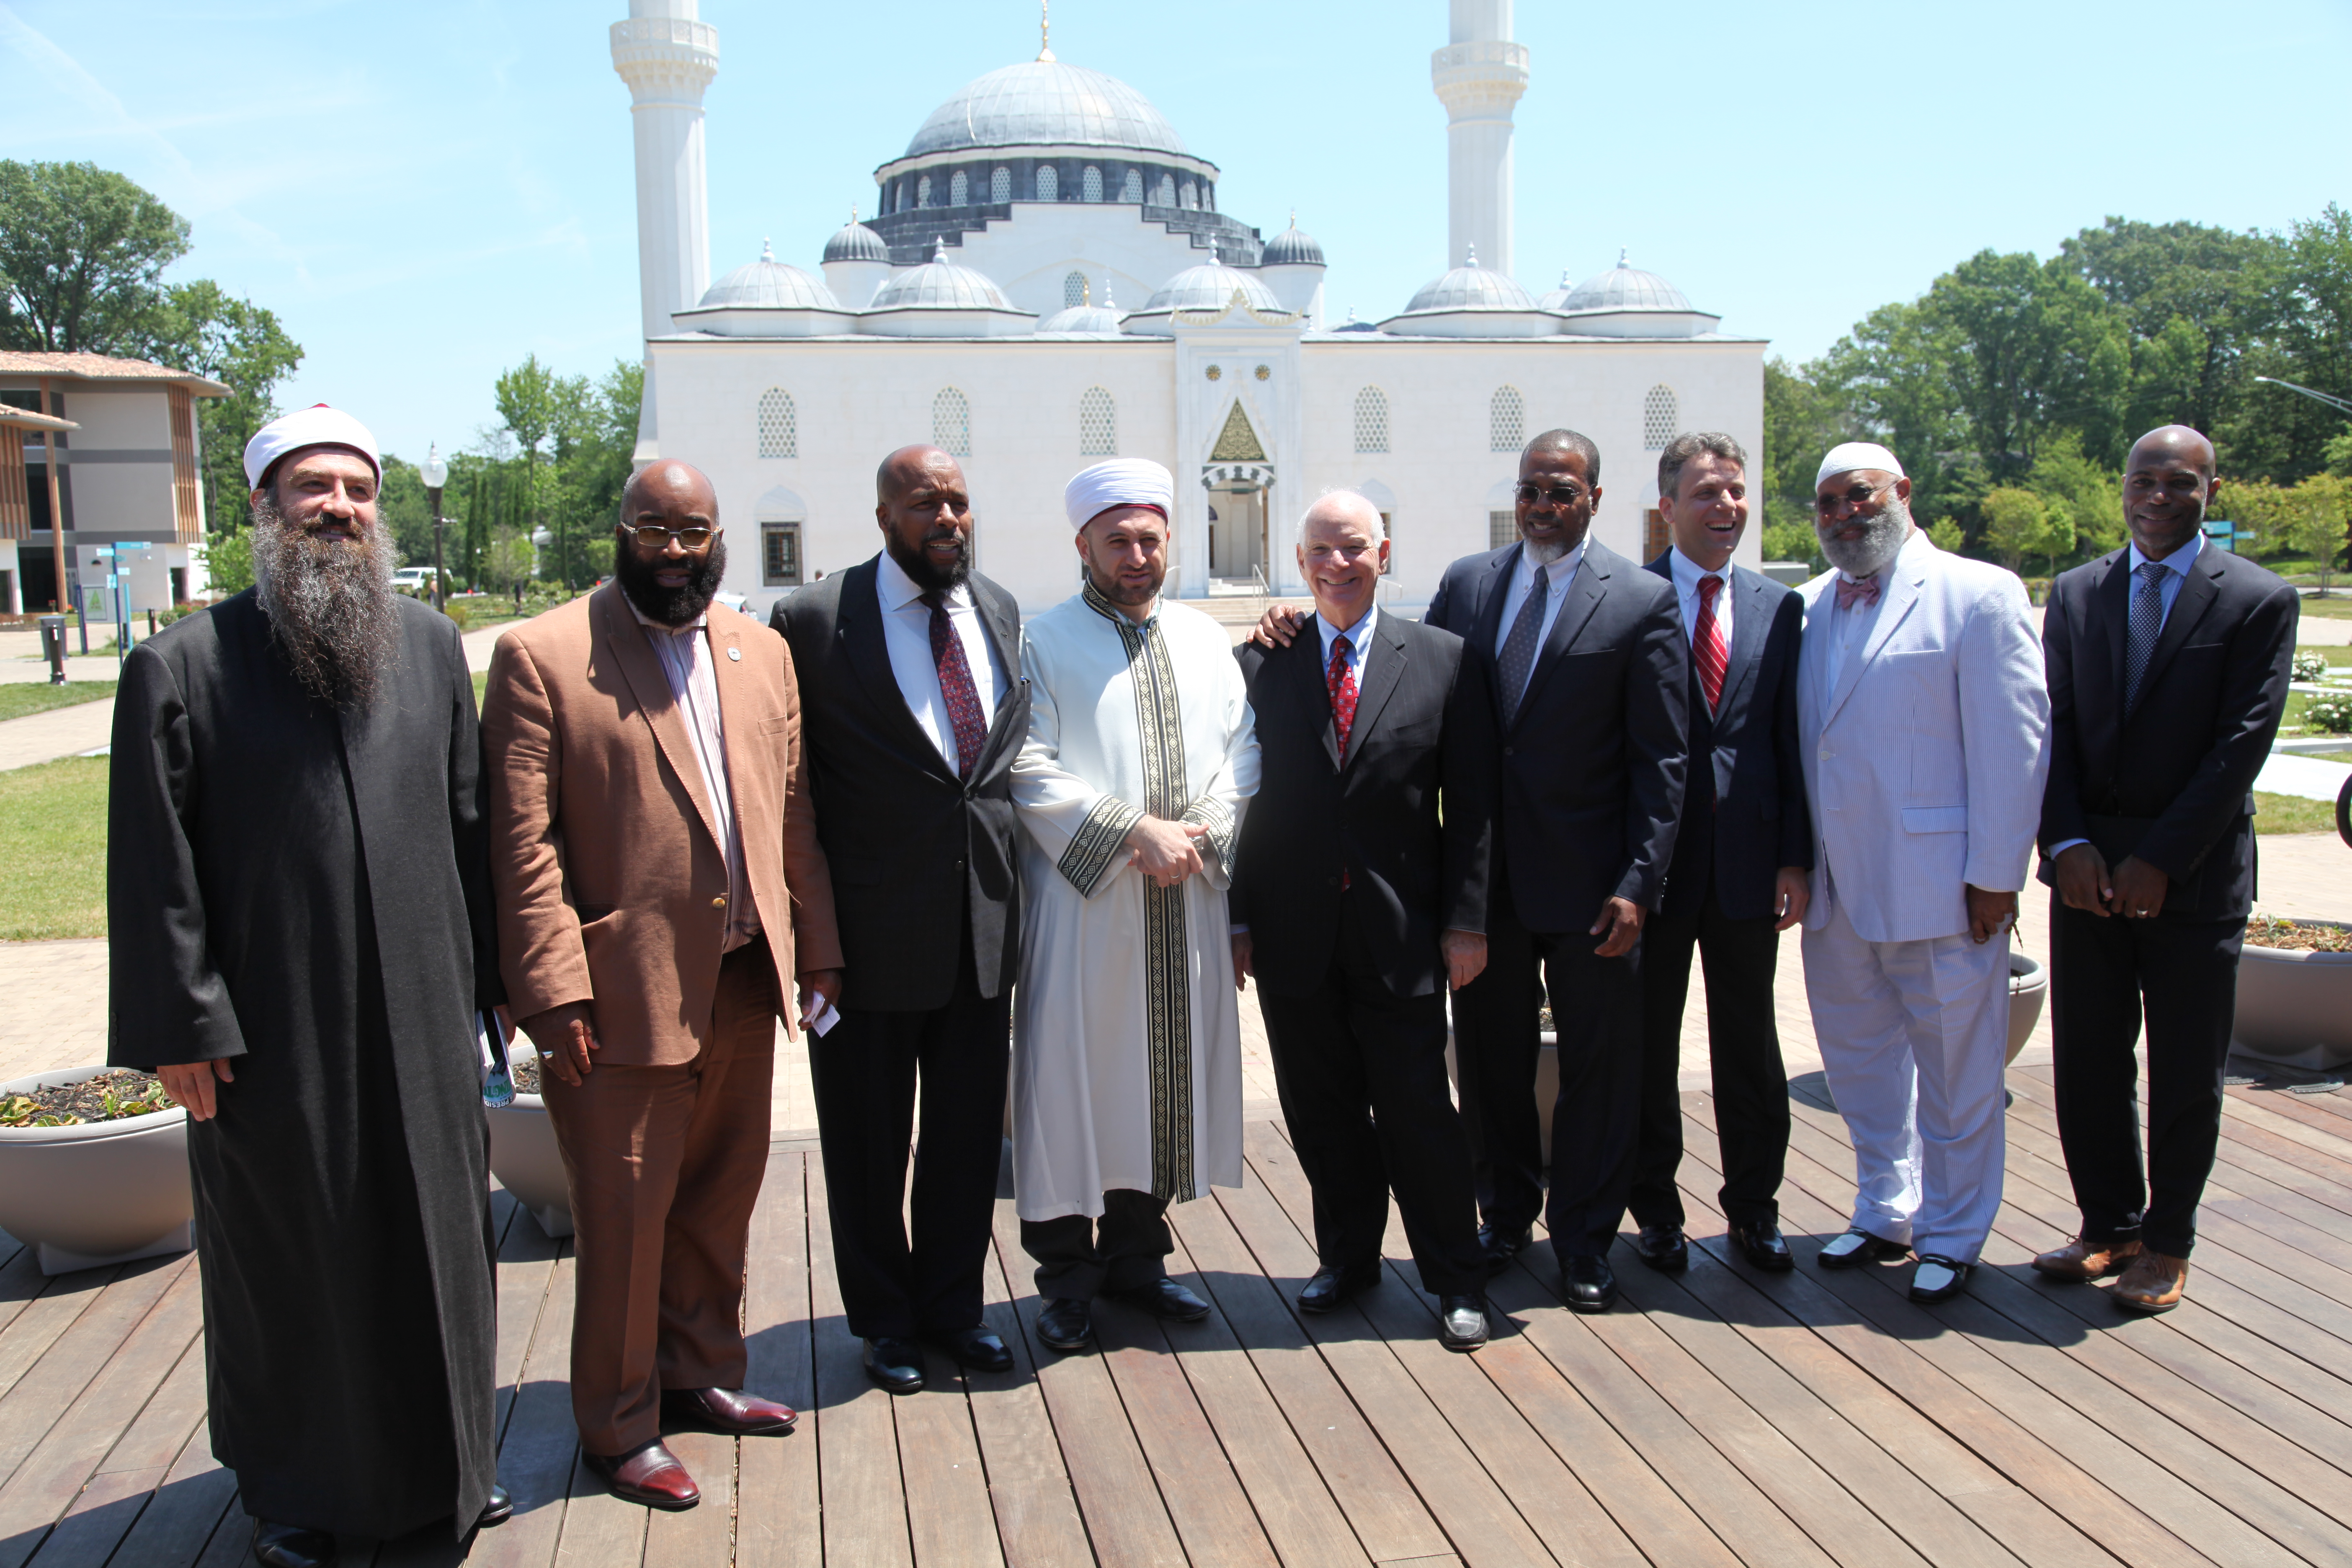 prince george county muslim singles Seventh-day adventist beliefs are meant to permeate your whole life growing out of scriptures that paint a compelling portrait of god, you are invited to explore,.